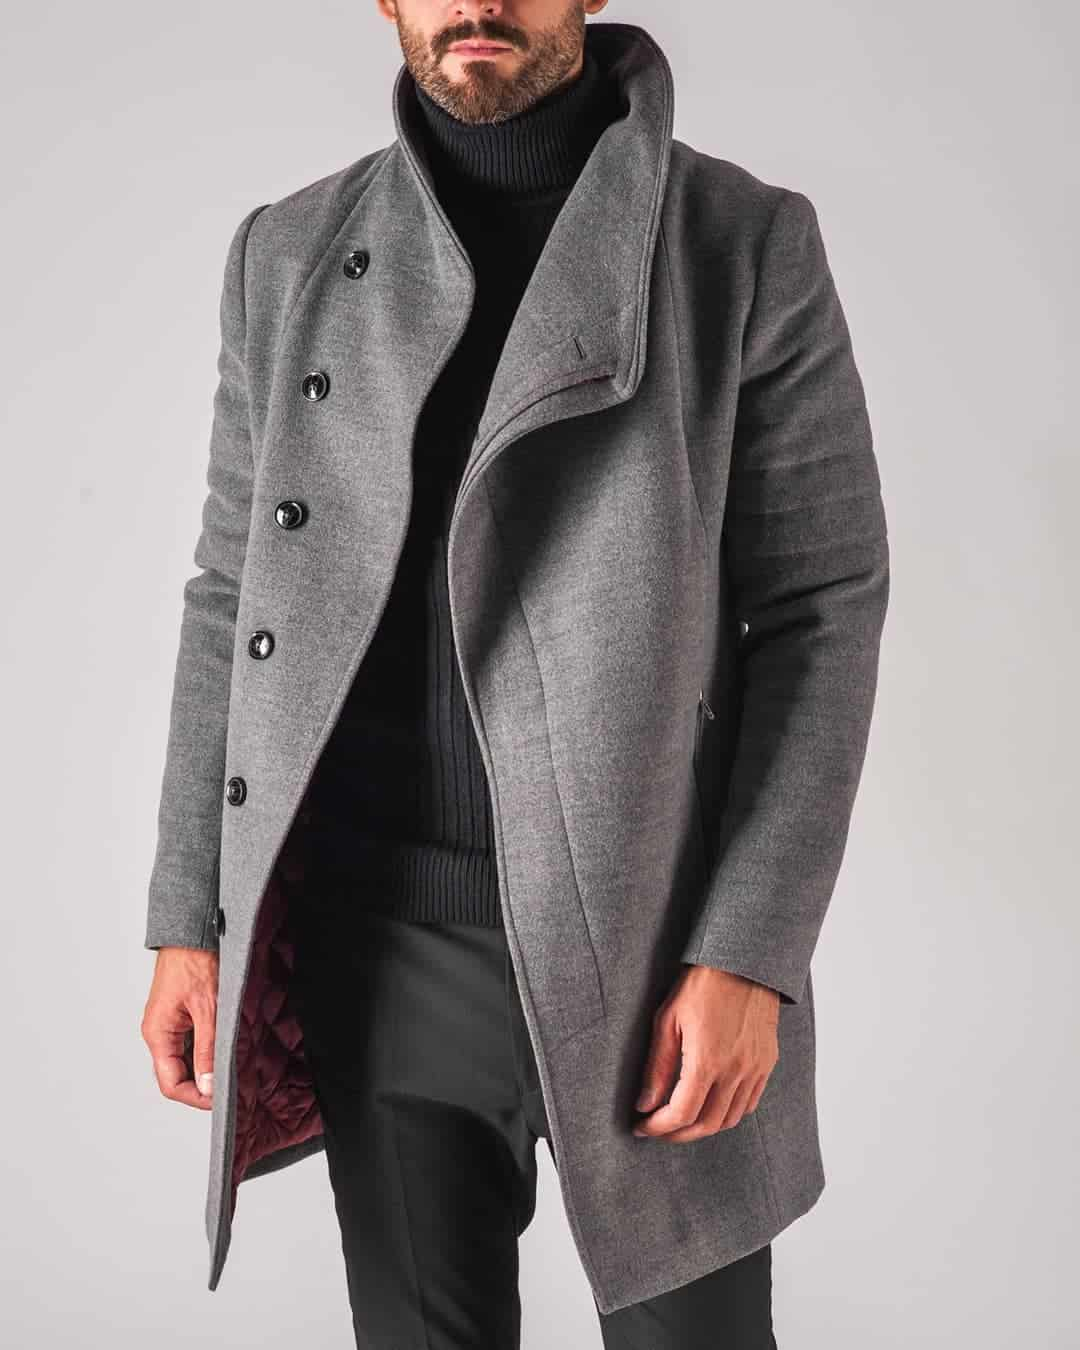 best-winter-jackets-2019Mens Winter Coats 2021: Top Trends and Novelties (30+ Photos and Videos)